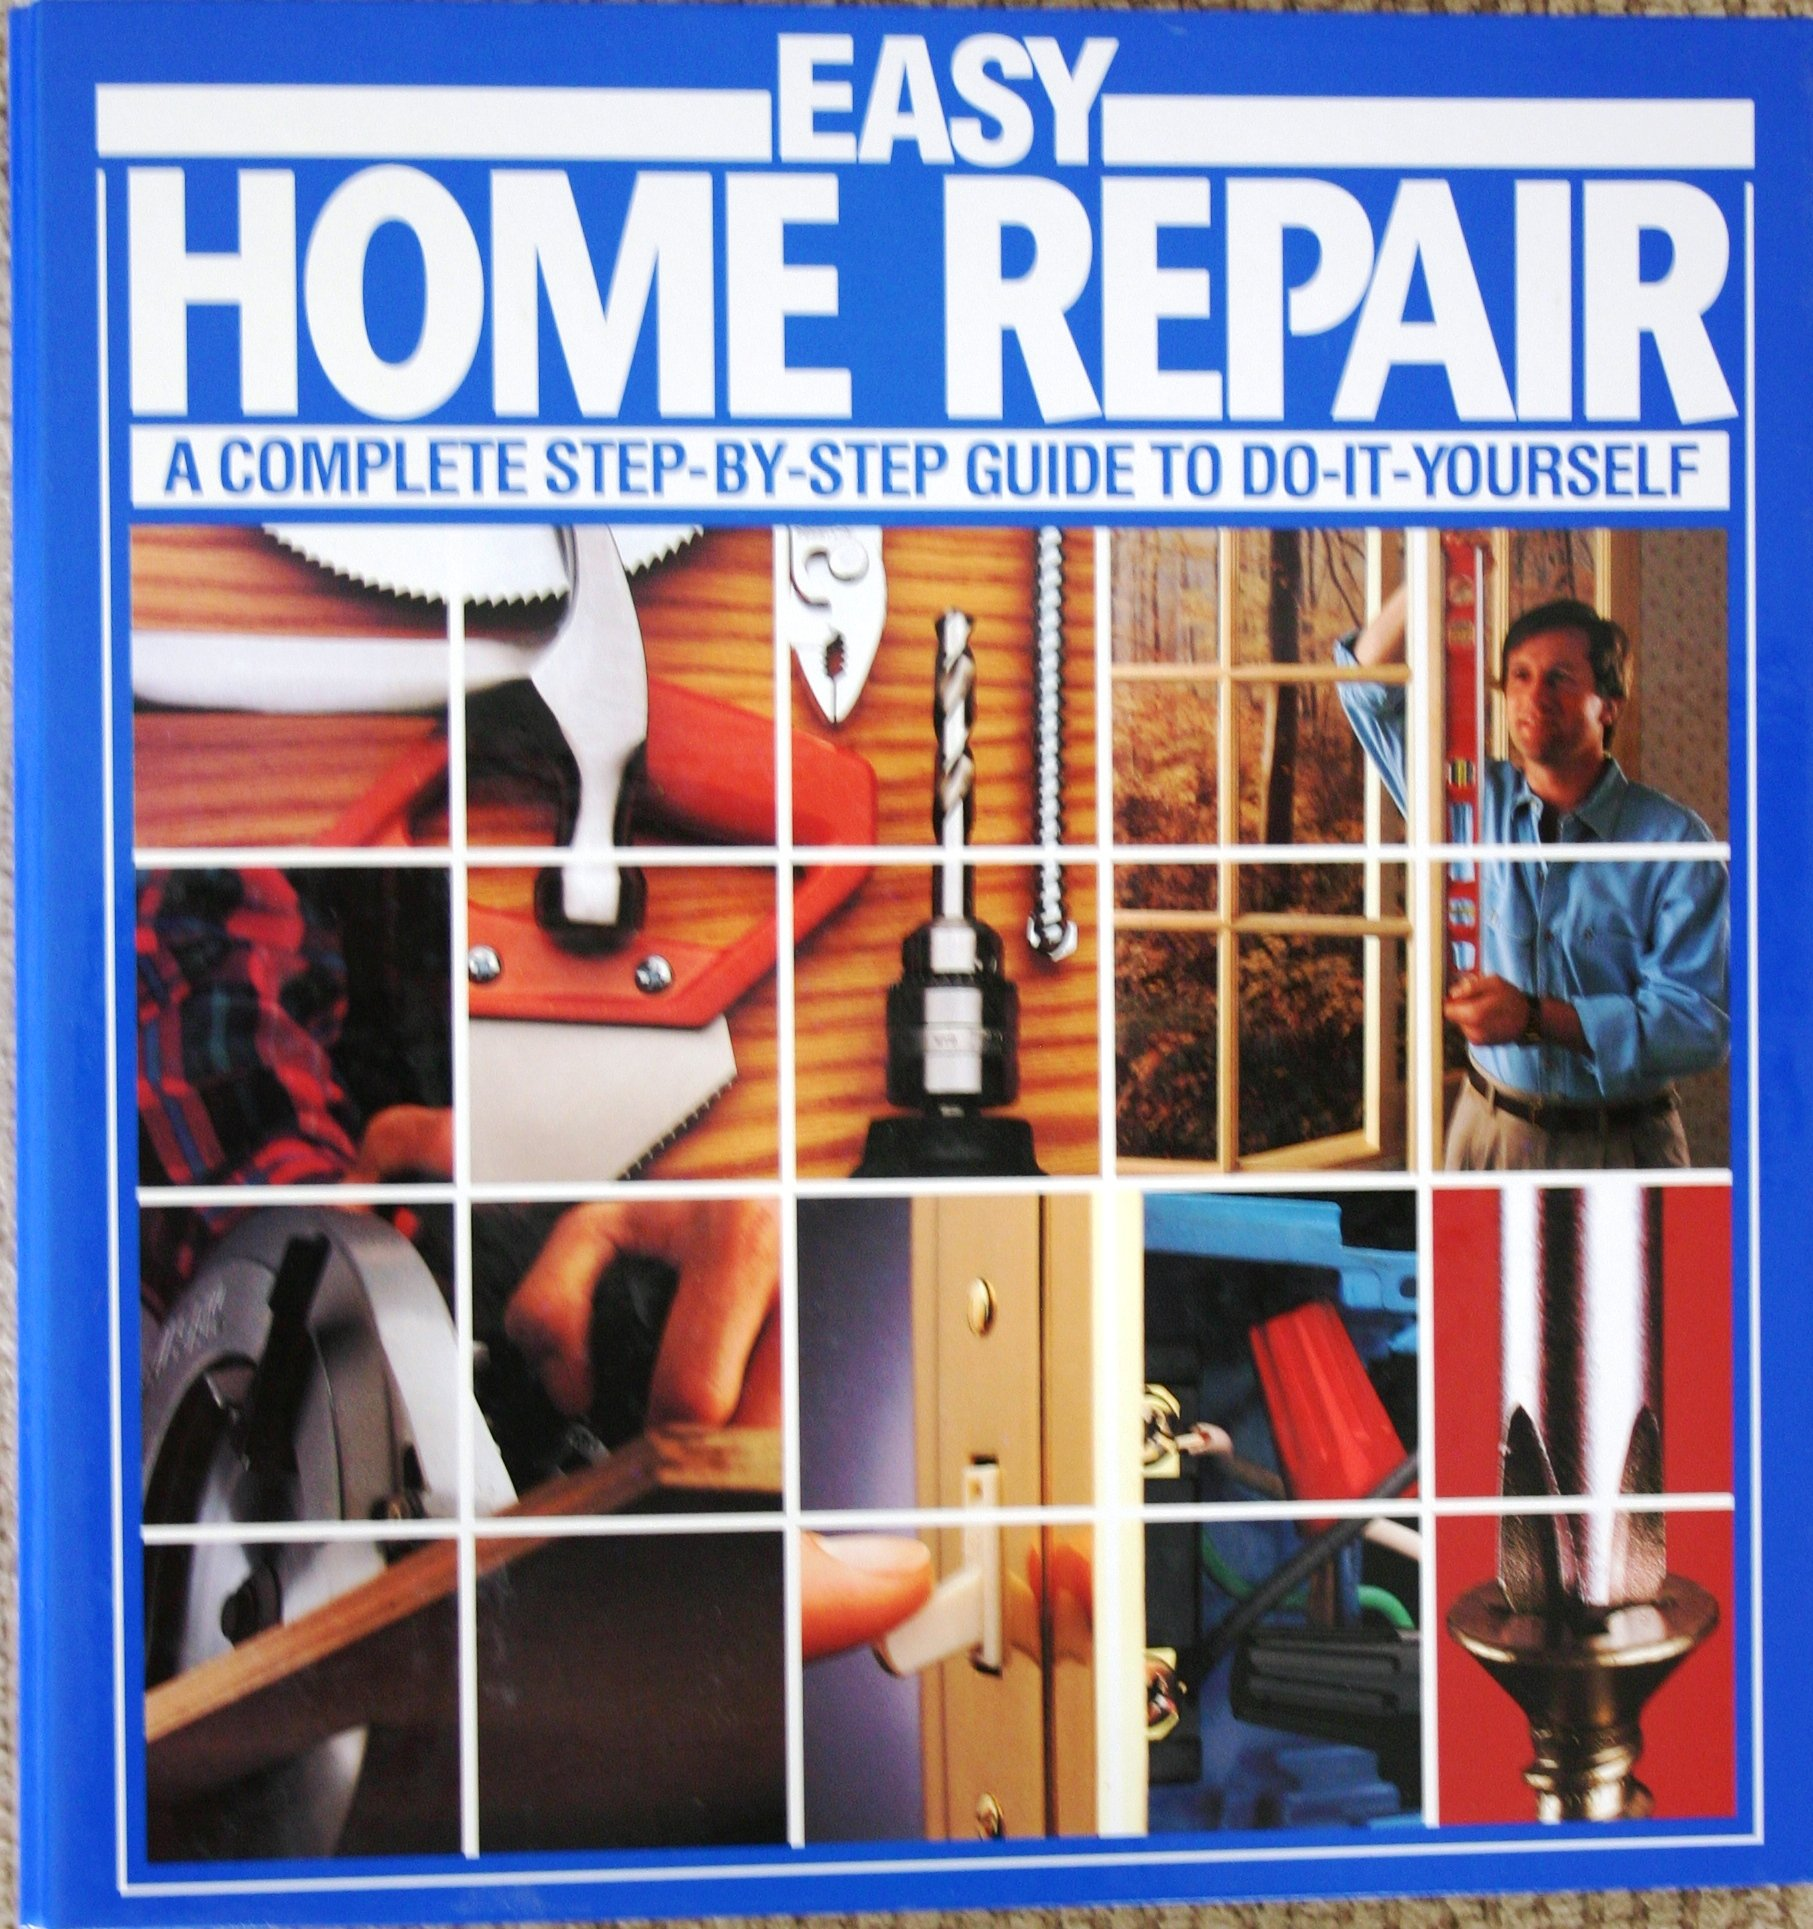 Easy home repair a complete step by step guide to do it yourself easy home repair a complete step by step guide to do it yourself bob anderson amazon books solutioingenieria Choice Image